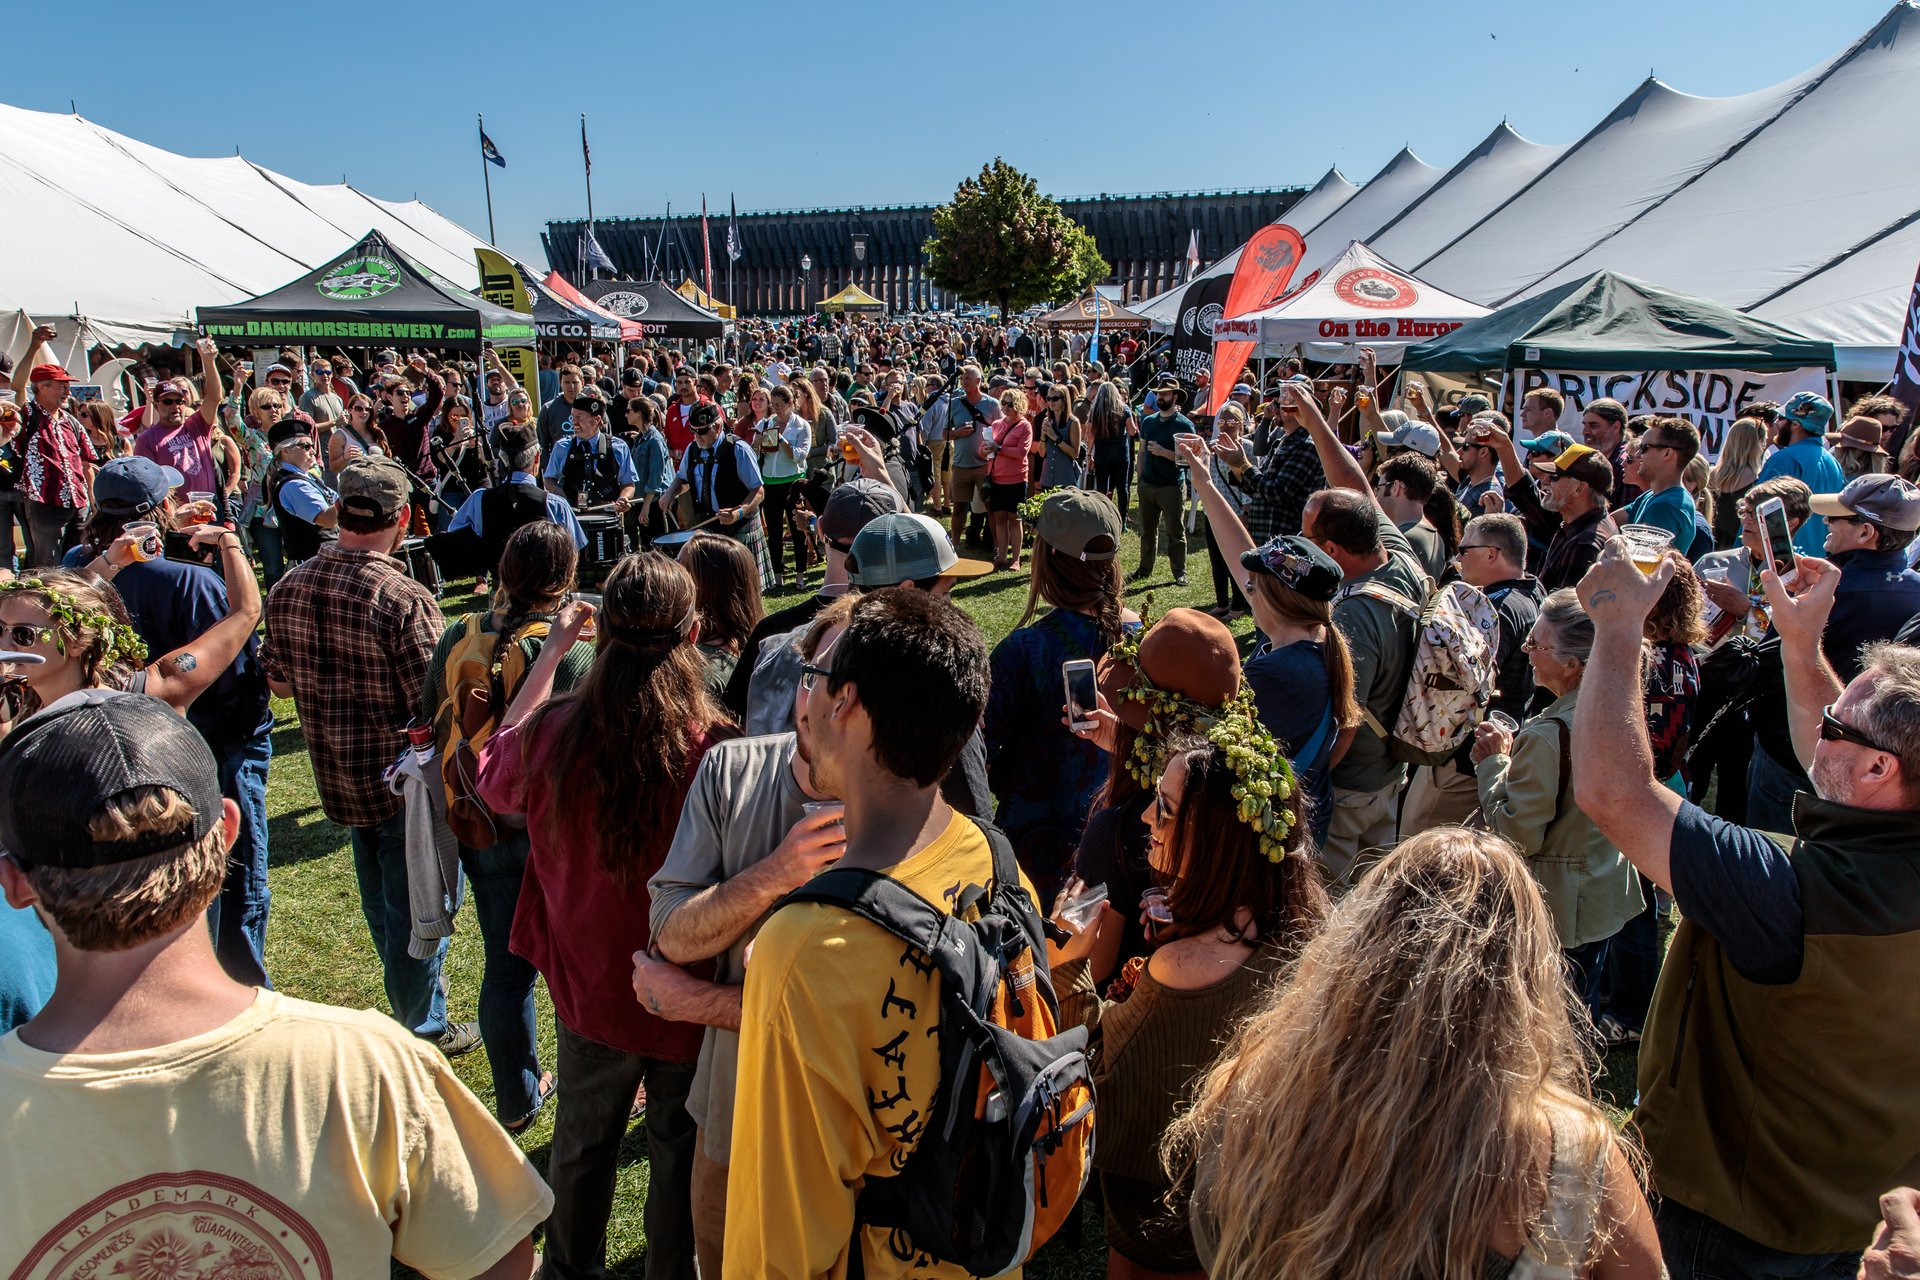 U.P. Fall Beer Festival in Marquette, MI in Midwest 2020 - Best Time